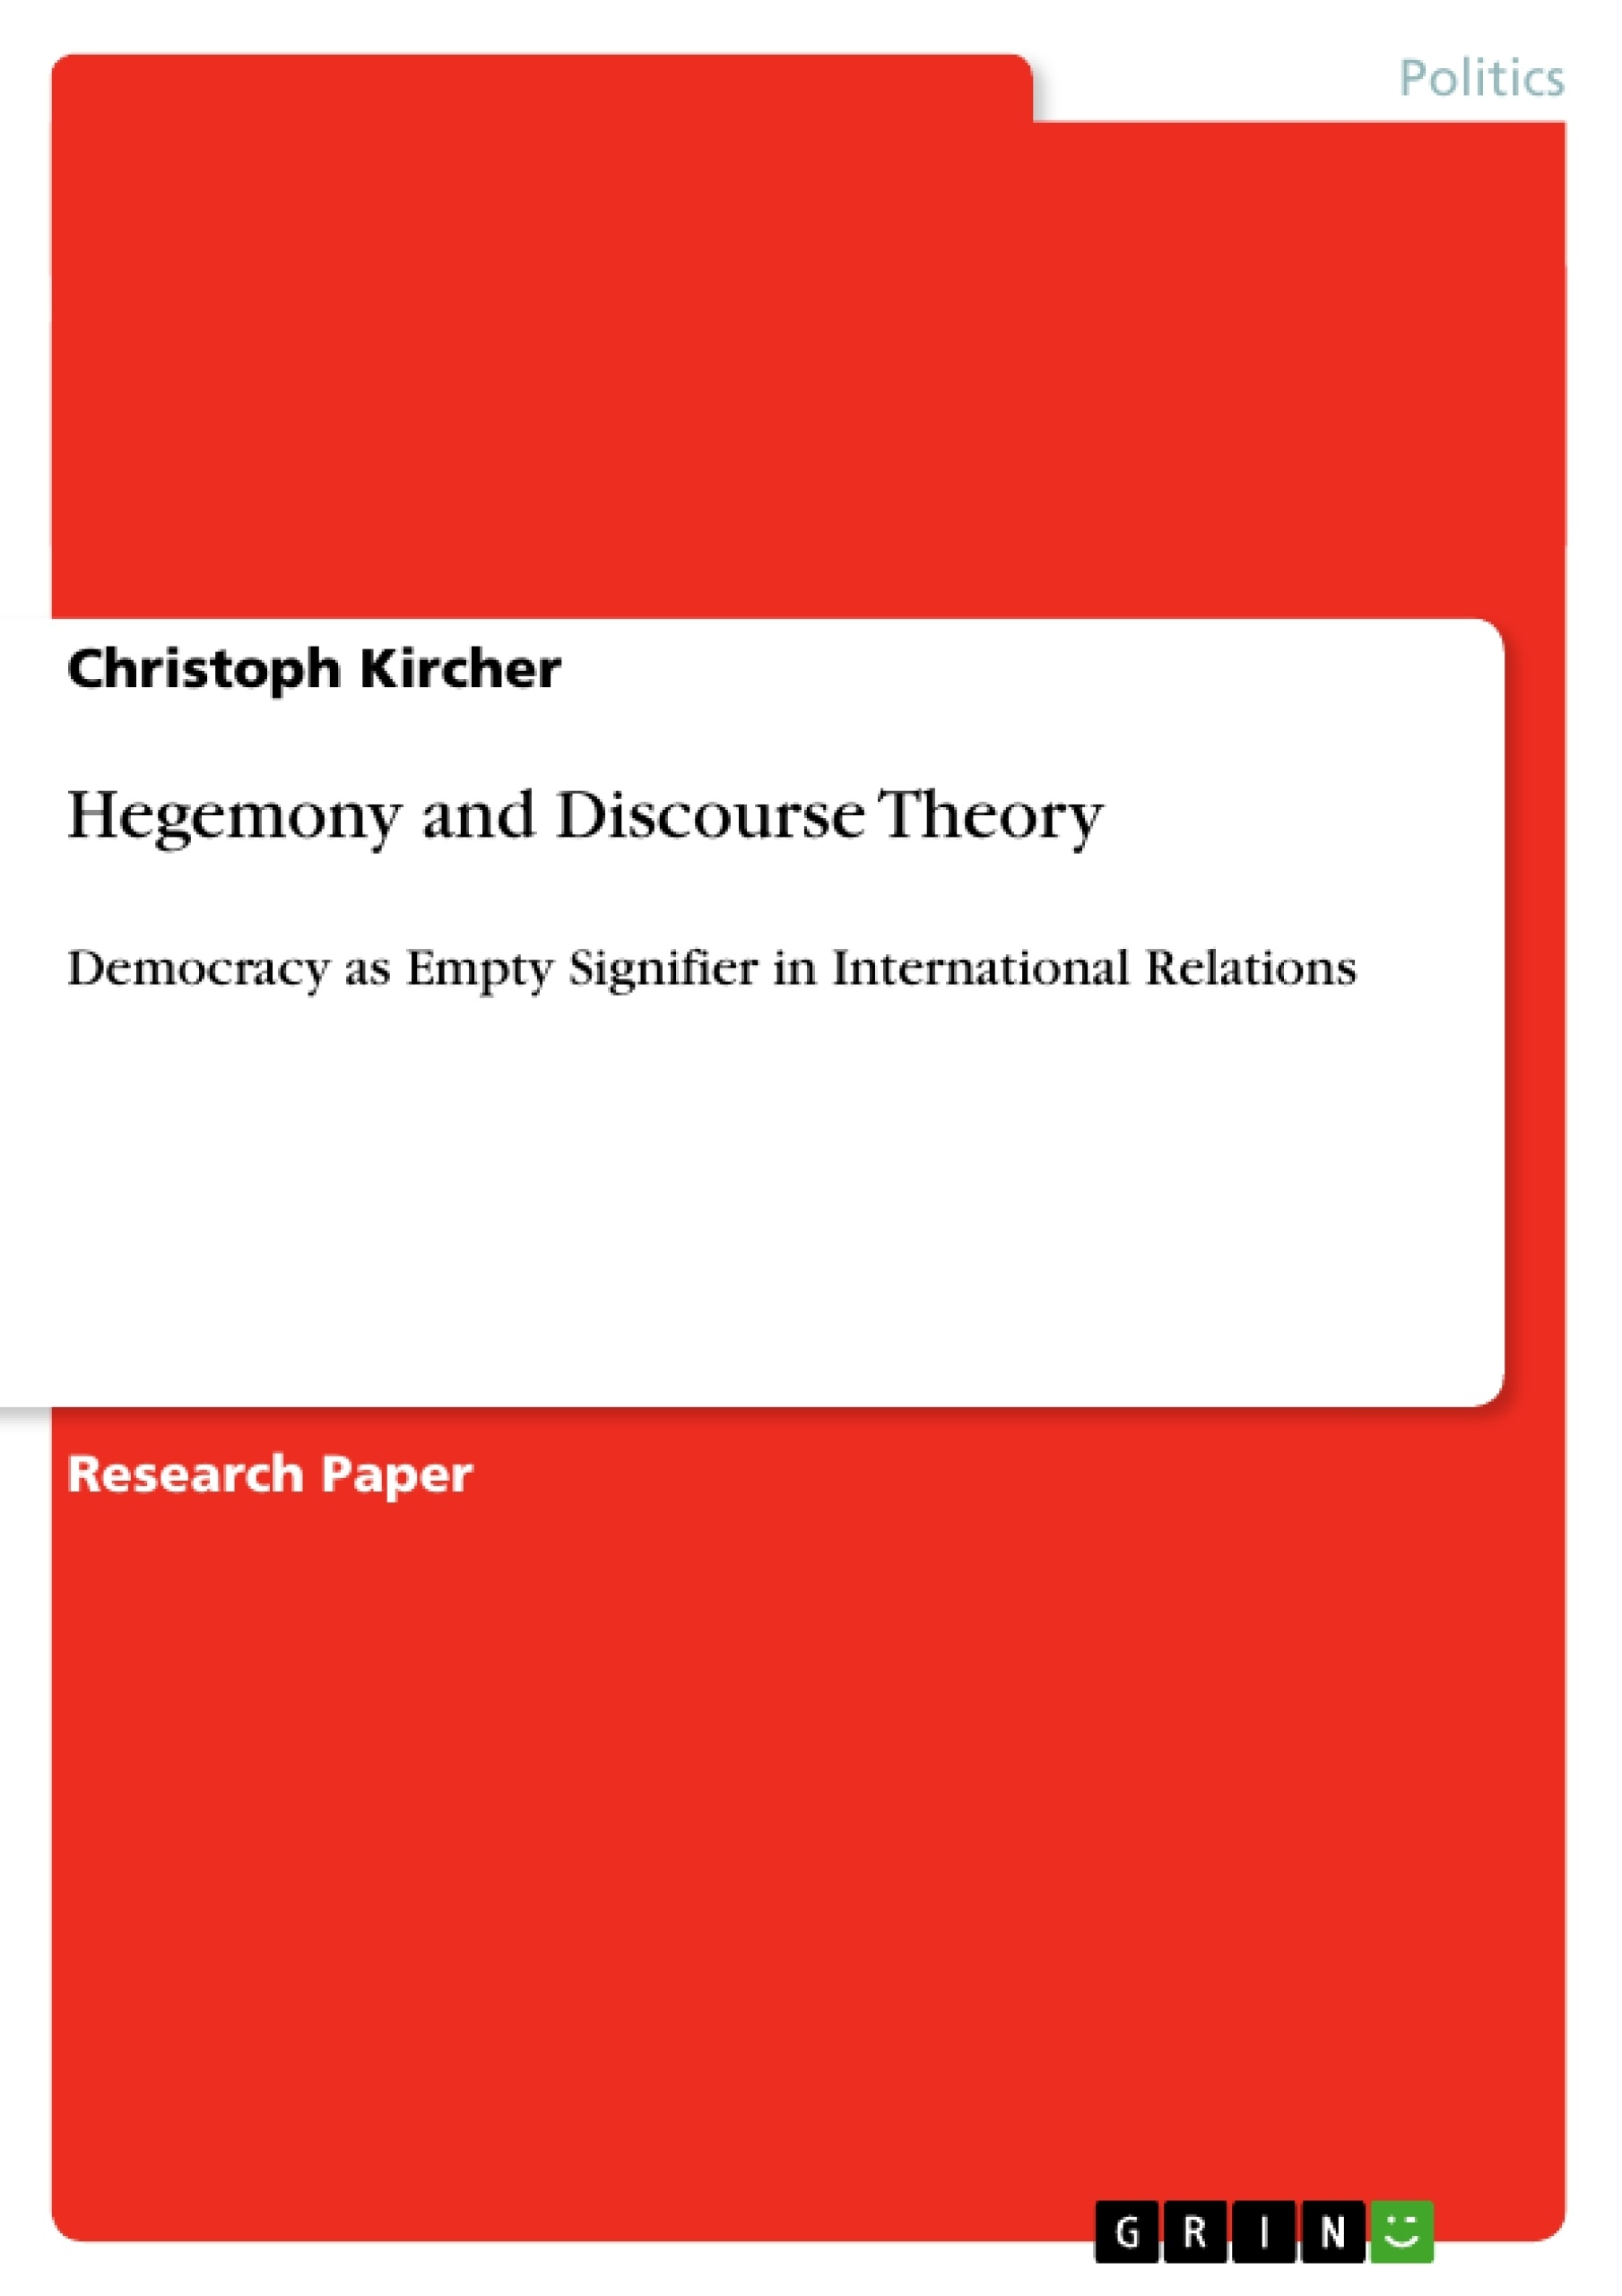 Title: Hegemony and Discourse Theory